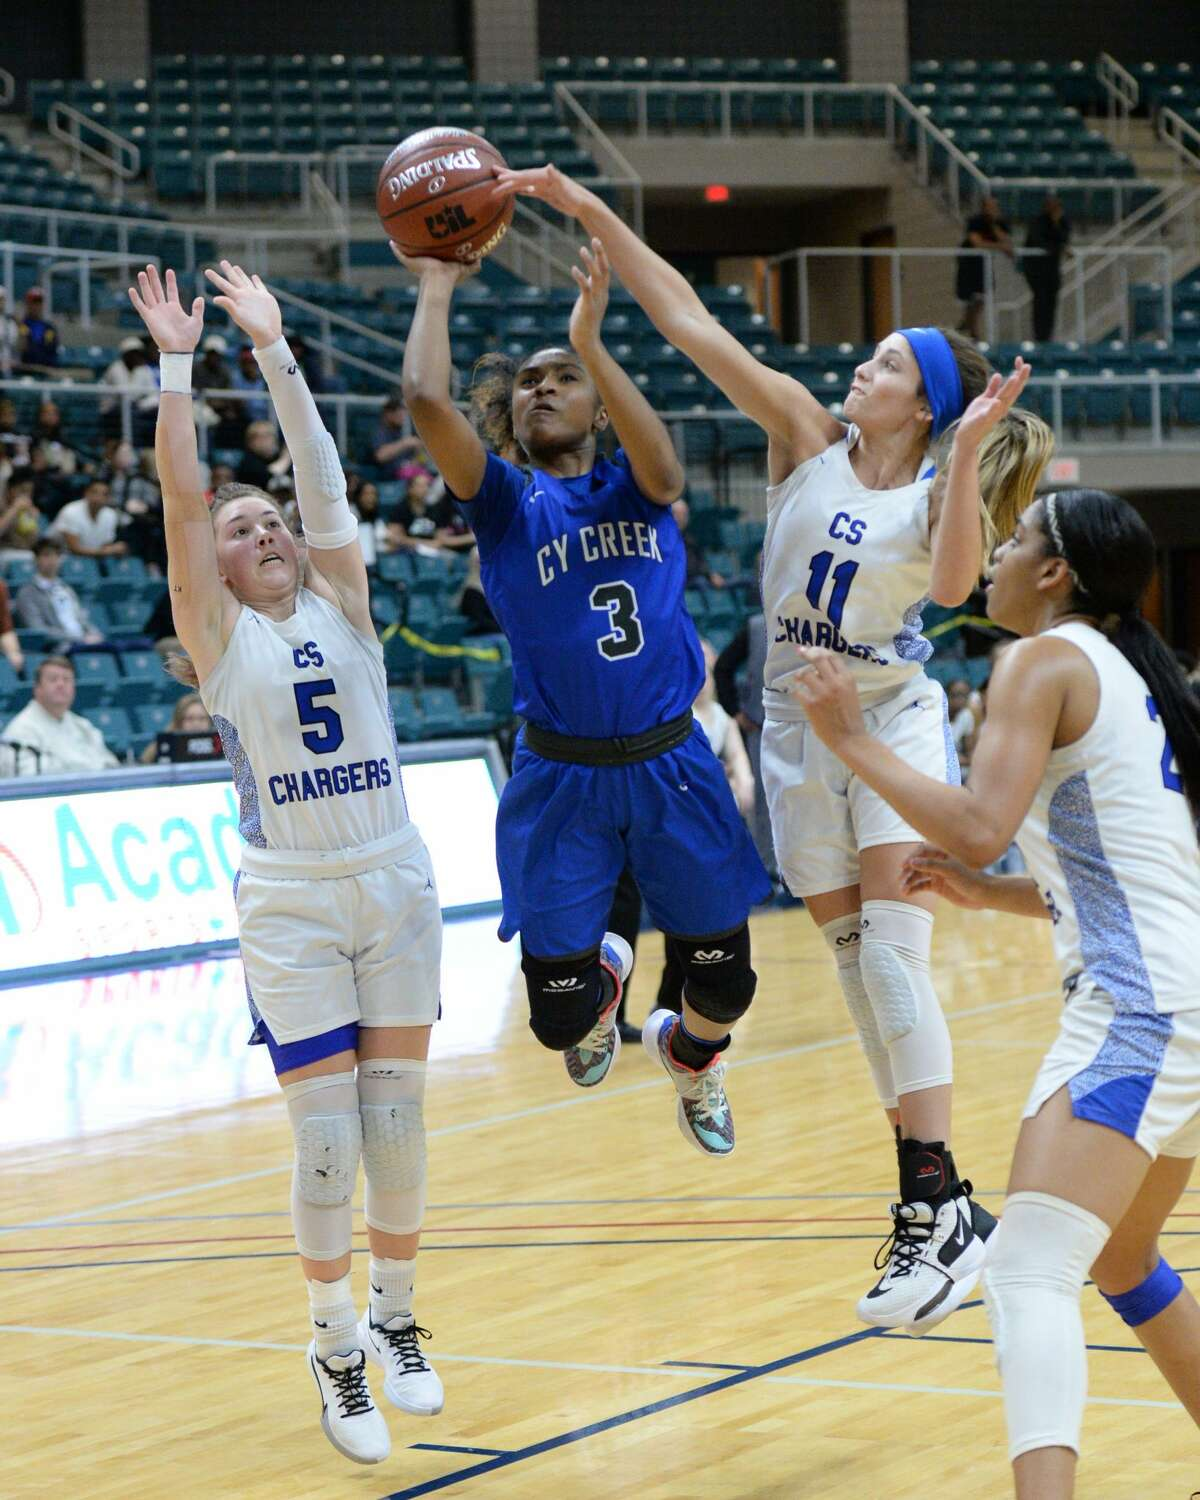 Rori Harmon (3) of Cy Creek drives to the basket between Kylie Minter (5) and Kylenn Tolopka (11) of Clear Springs during the third quarter of a Girls Region III-6A championship between the Cy Creek Cougars and the Clear Springs Chargers on Saturday, February 29, 2020 at the Leonard Merrell Center, Katy, TX.